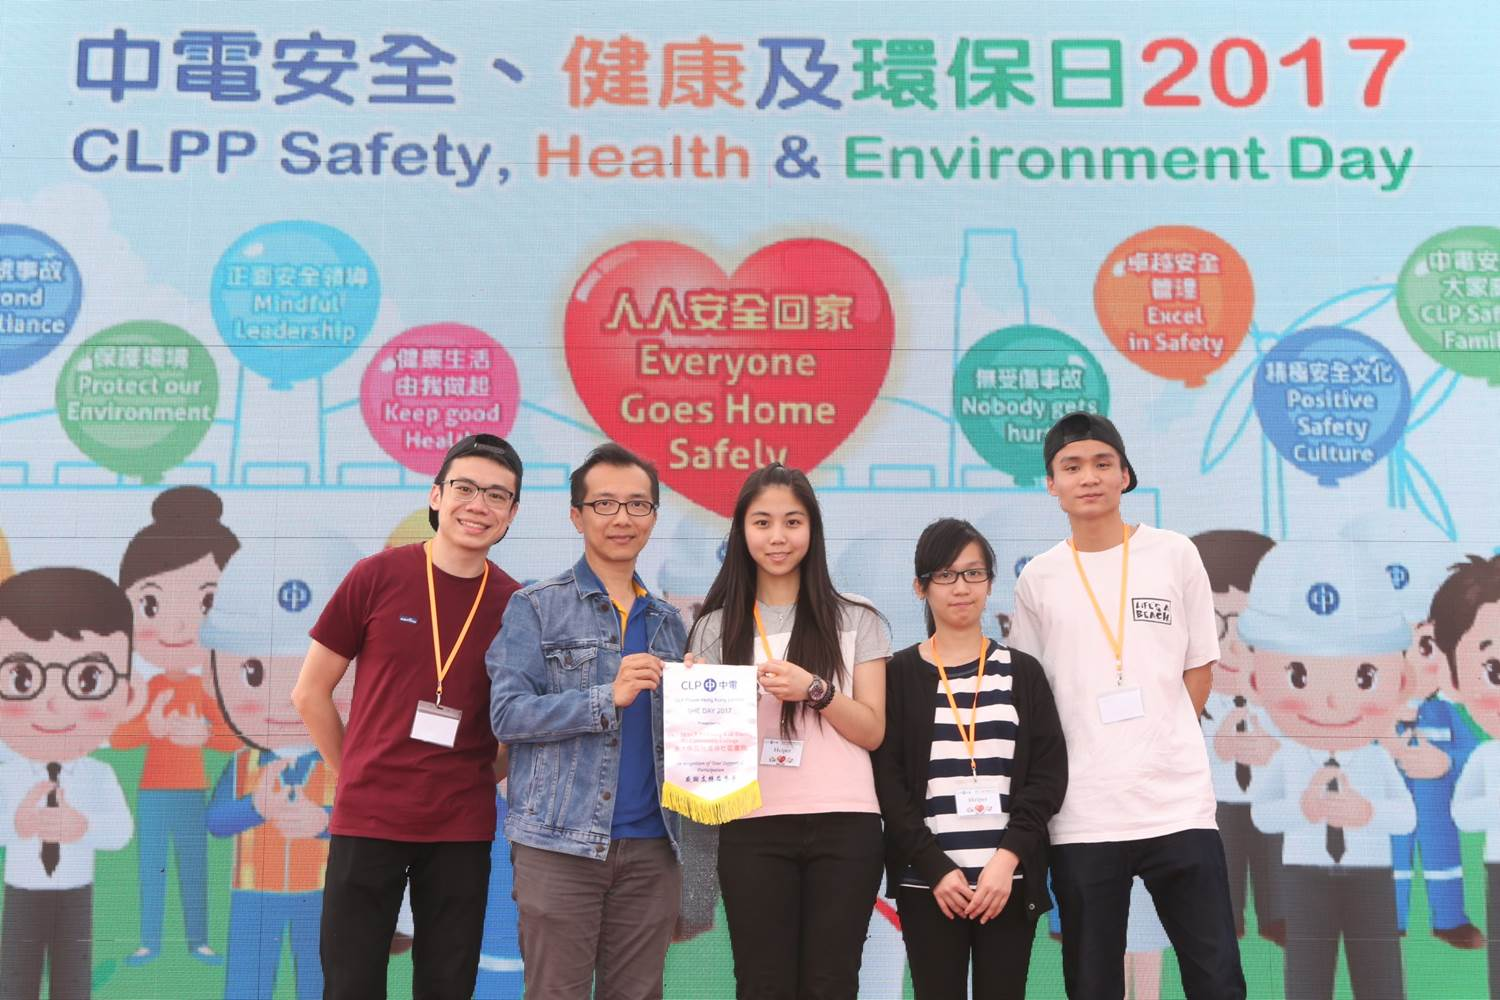 CLP Safety, Health & Environment (SHE) Day in 2017 - Photo - 7